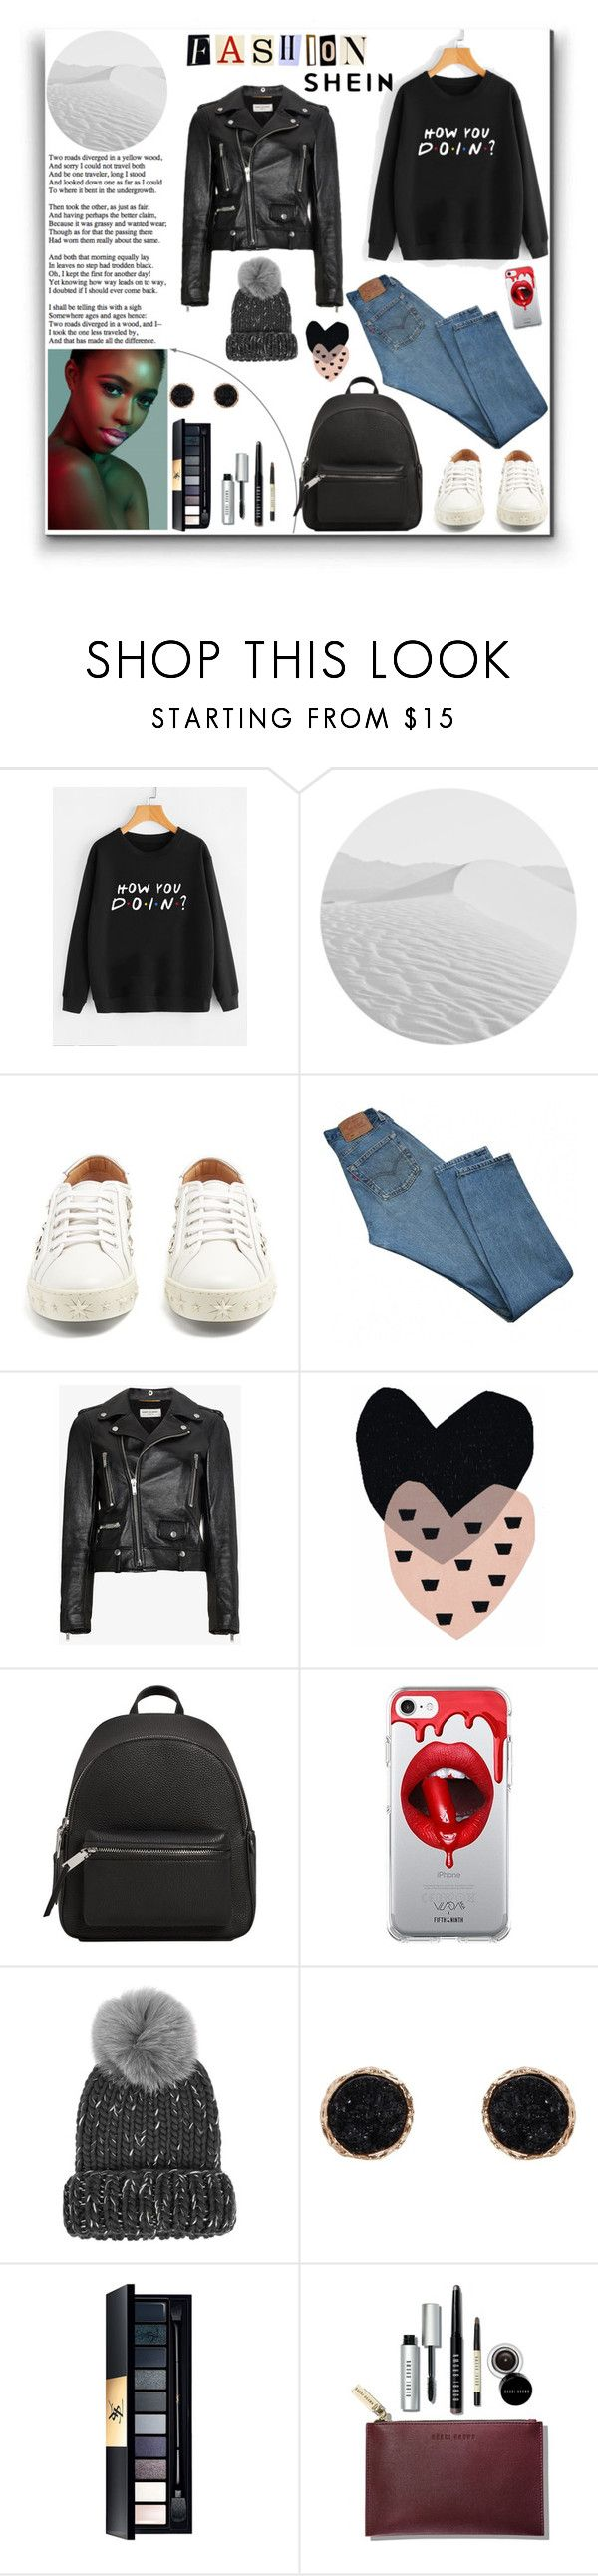 """Felpa Con Stampa Di Slogan"" by manuel-s ❤ liked on Polyvore featuring Aquazzura, Levi's, Yves Saint Laurent, Seventy Tree, MANGO, Fifth & Ninth, Eugenia Kim, Humble Chic and Bobbi Brown Cosmetics"